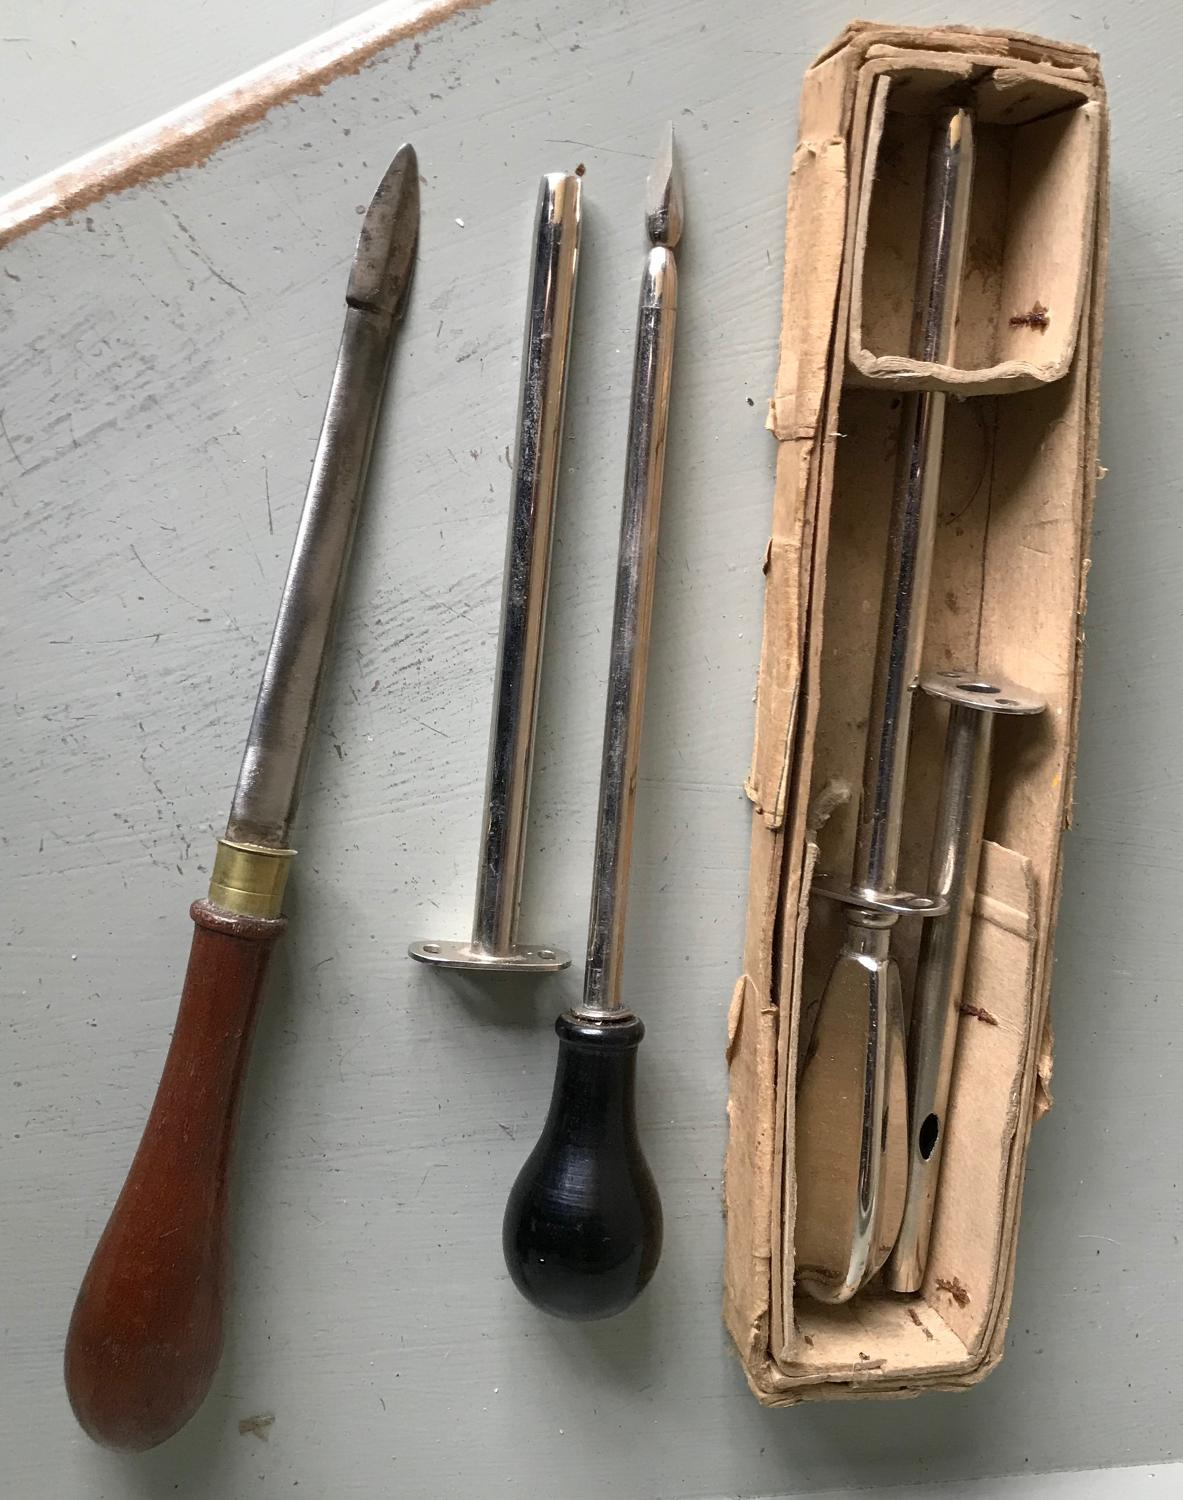 Antique Animal Anti-bloating Knives